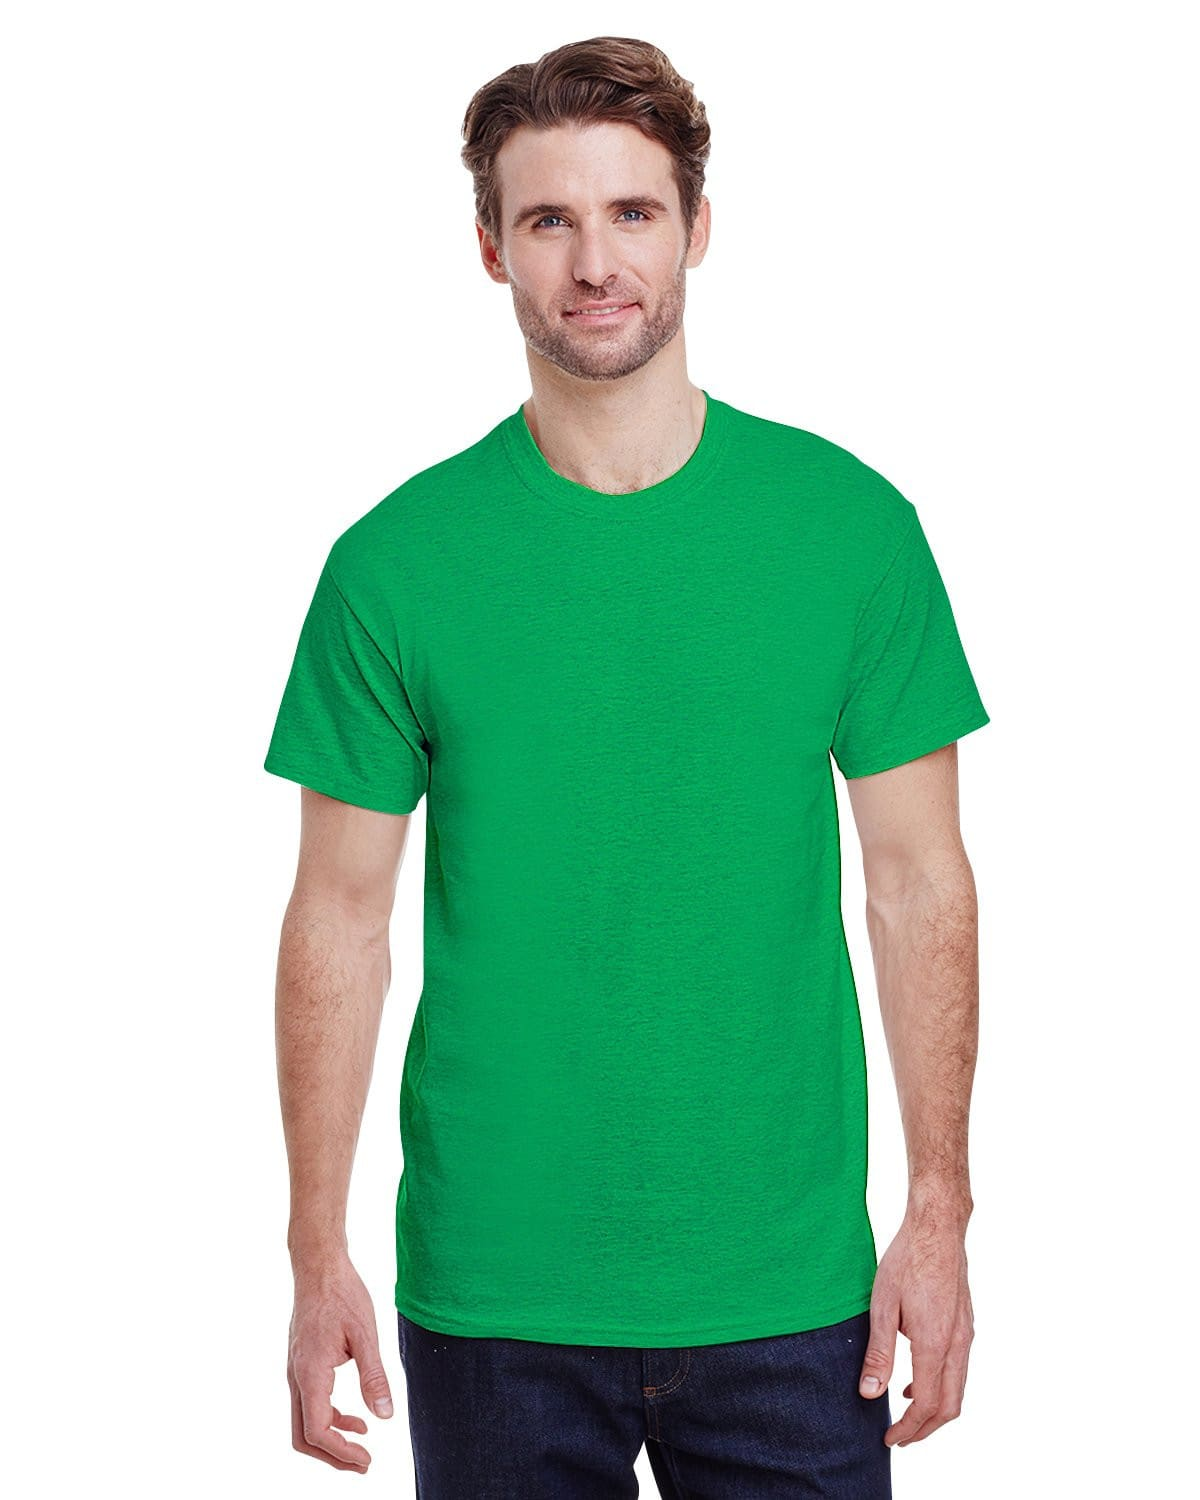 g500-adult-heavy-cotton-5-3oz-t-shirt-3xl-3XL-ANTIQ IRISH GRN-Oasispromos